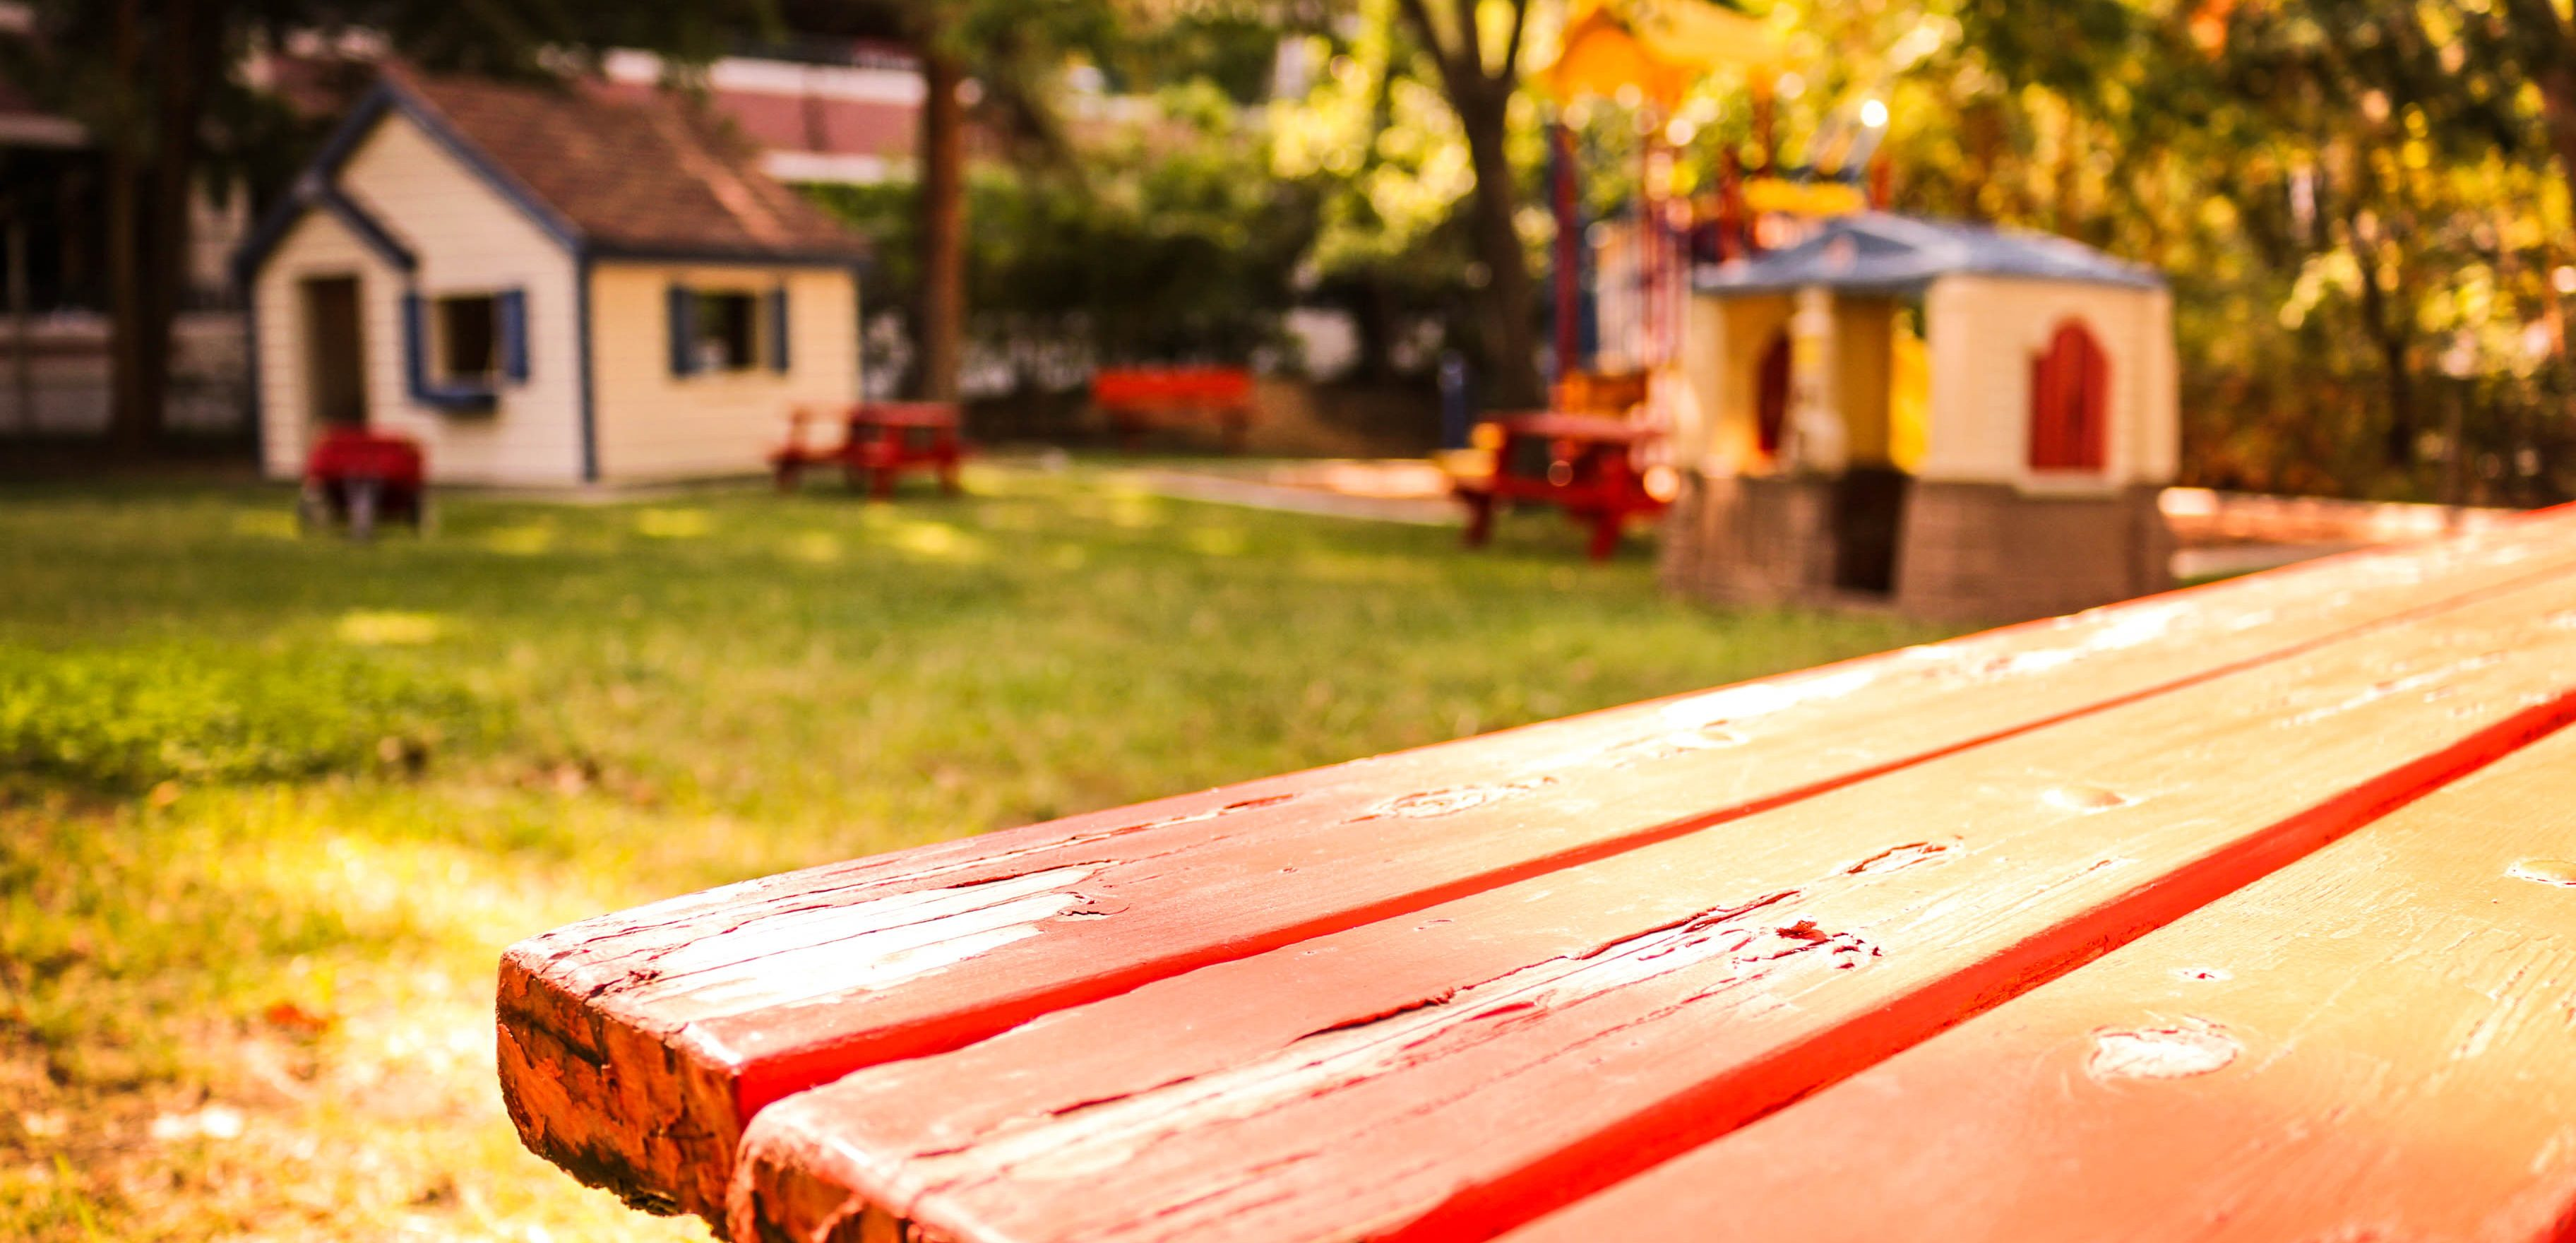 Picture of a backyard with a bench, two playhouses, and play structure